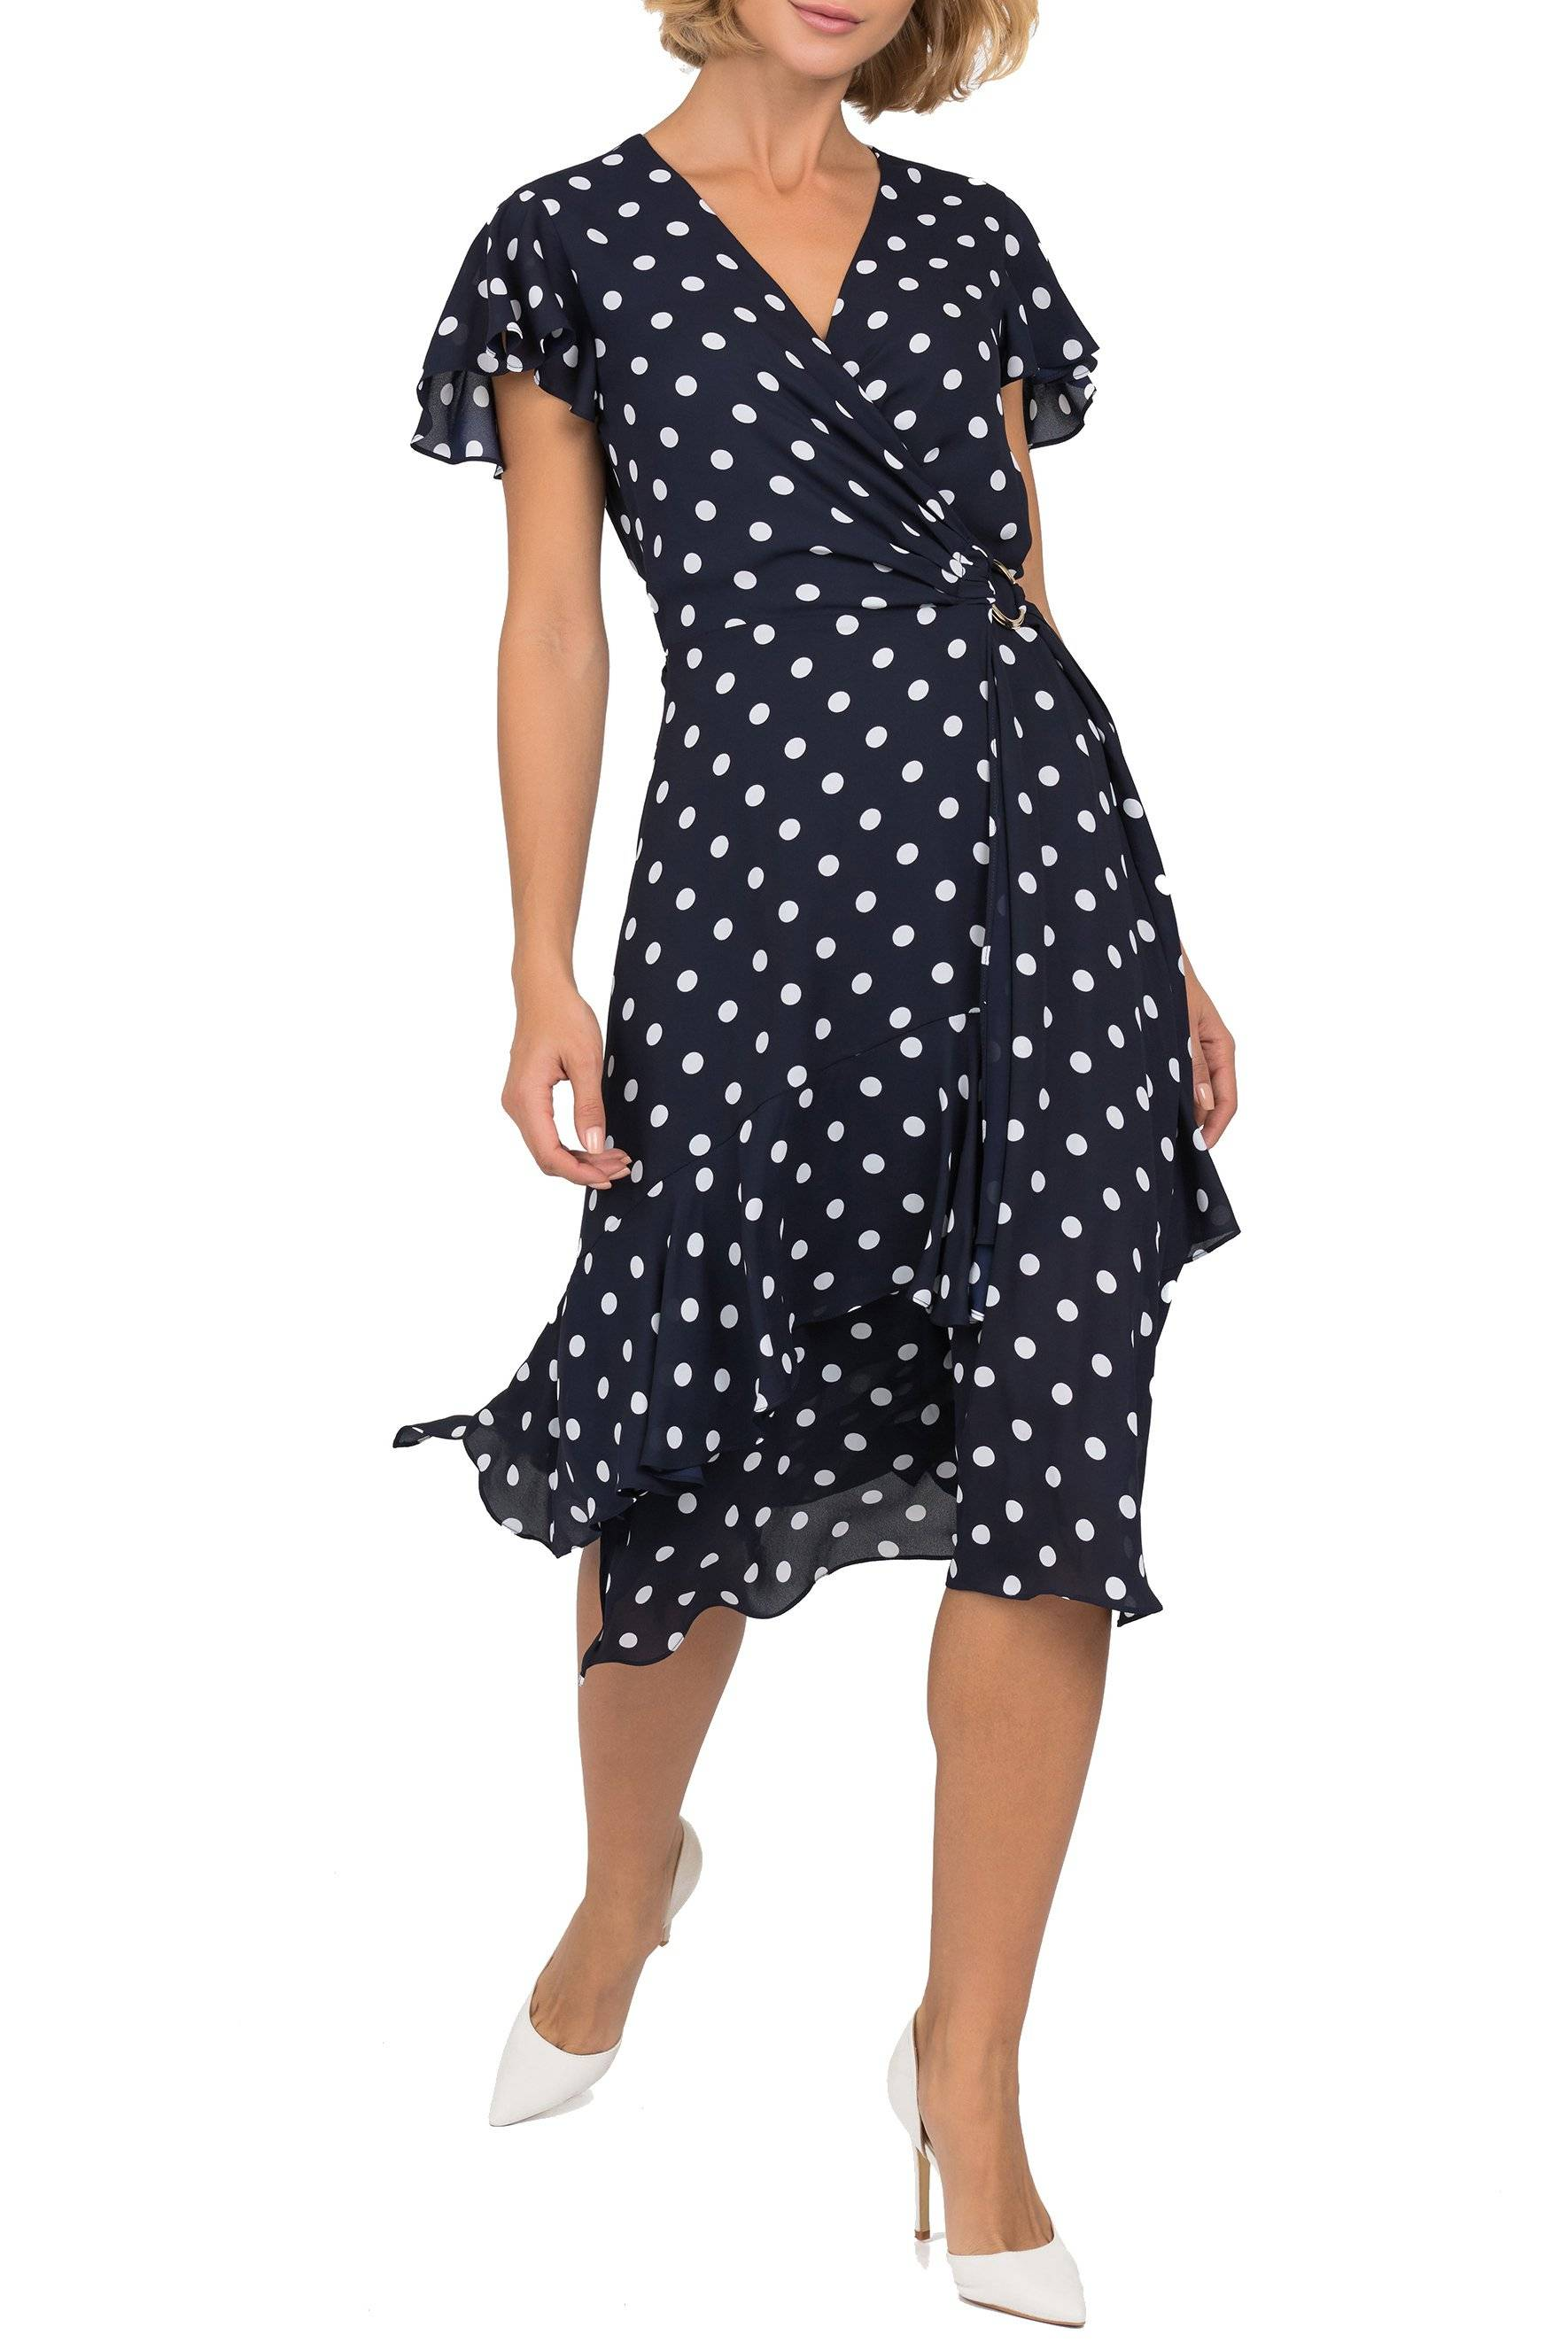 Polka Dot Wrap Dress - 191616